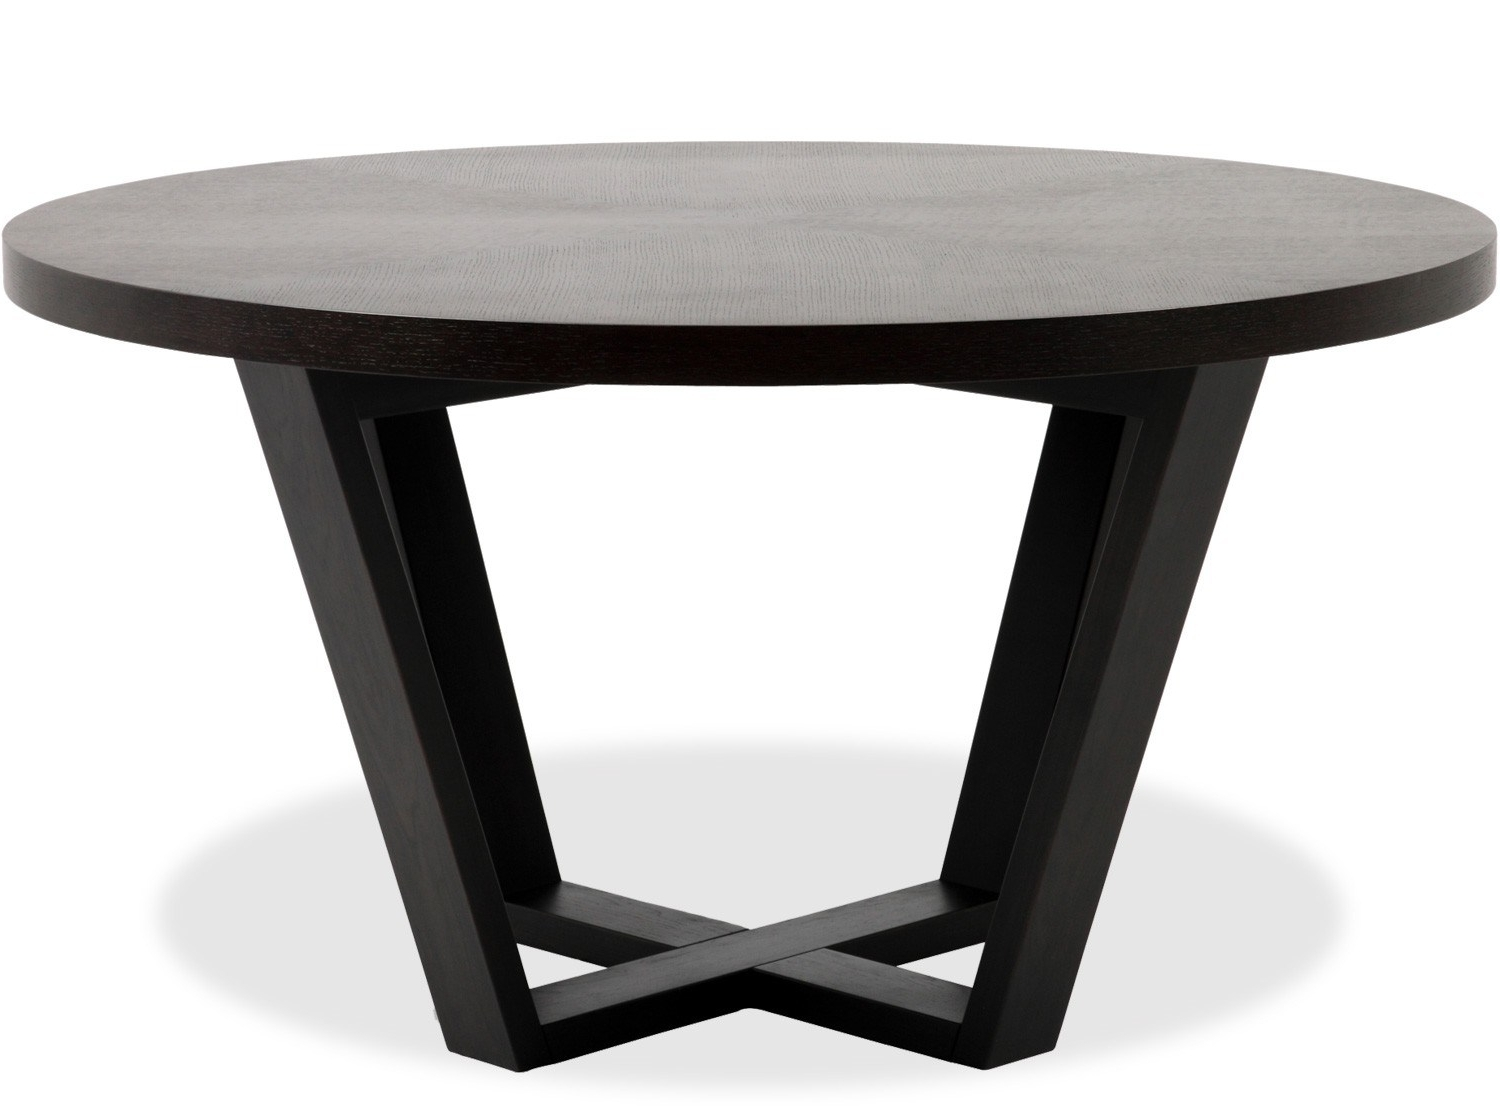 Newest Black Round Dining Table – Theradmommy Pertaining To Caira Black Round Dining Tables (View 6 of 25)